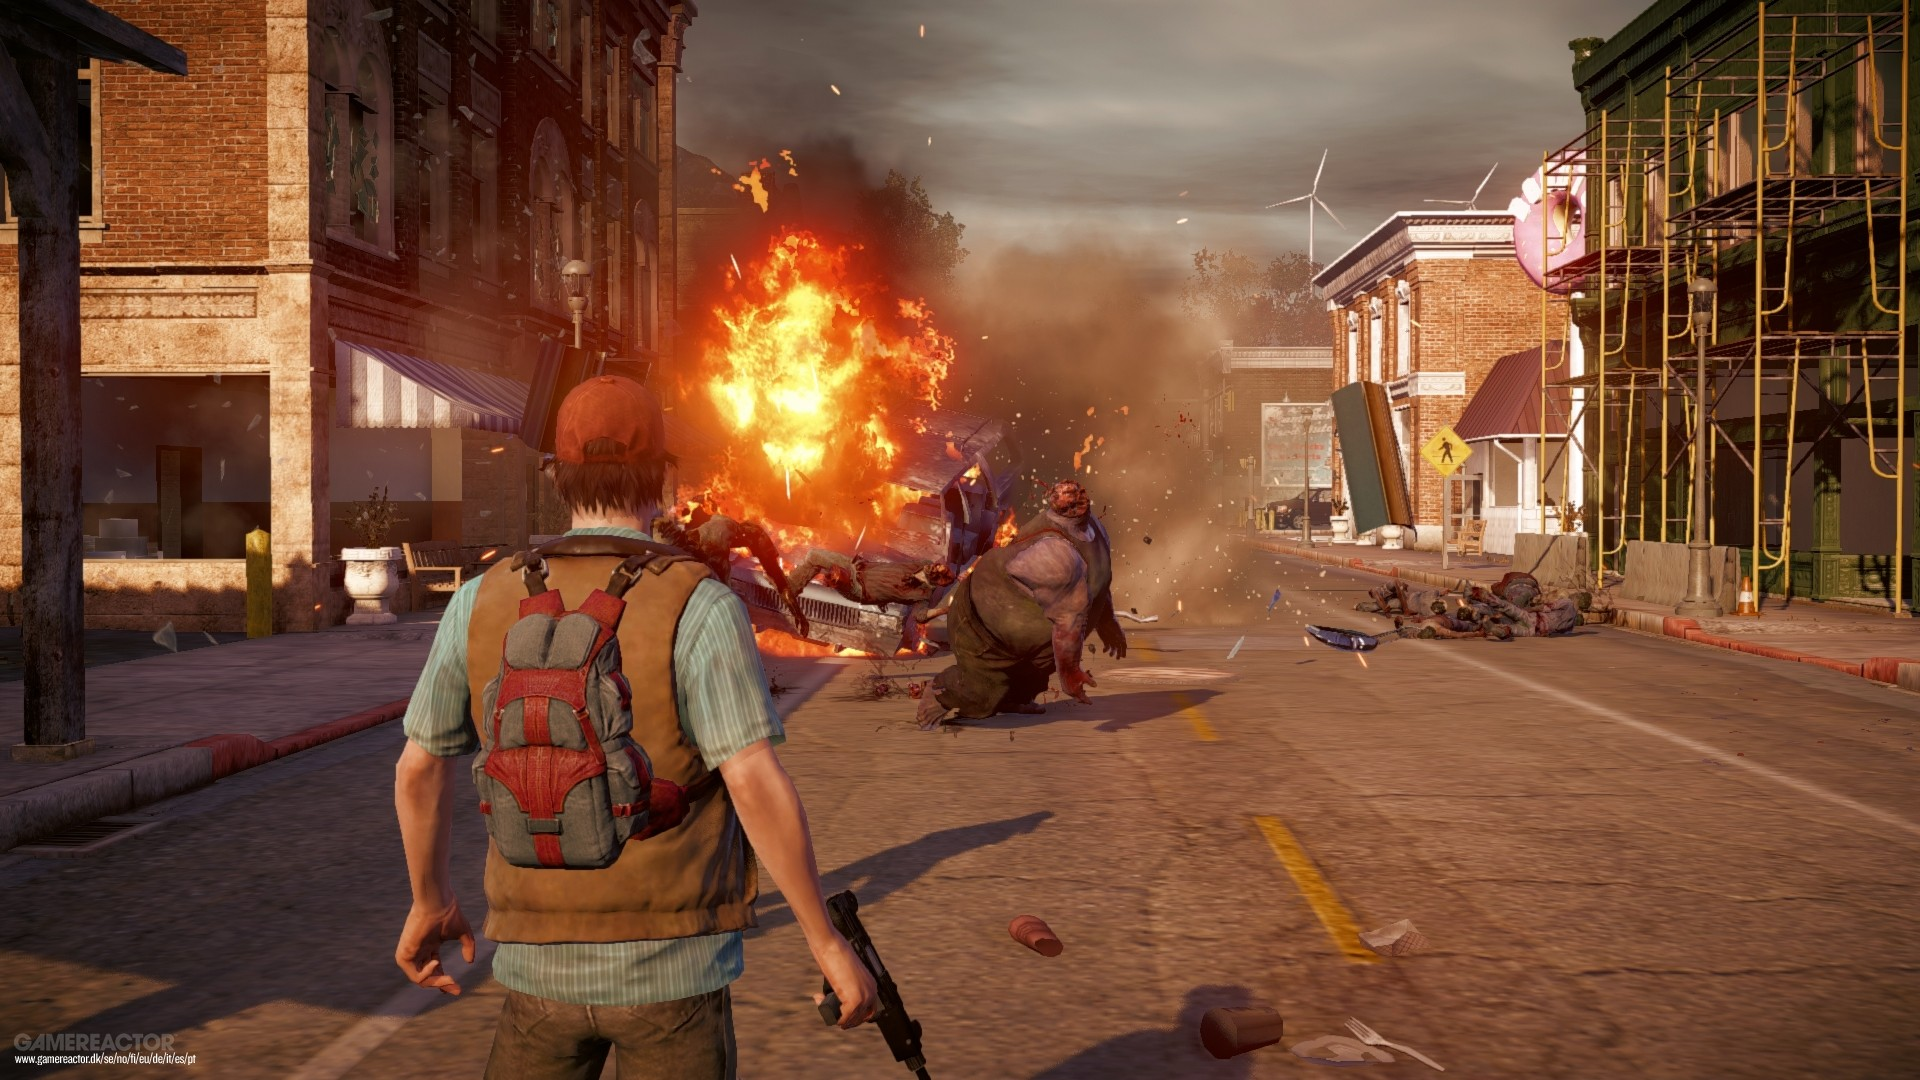 State of Decay 2 letting you Choose Your Own Apocalypse